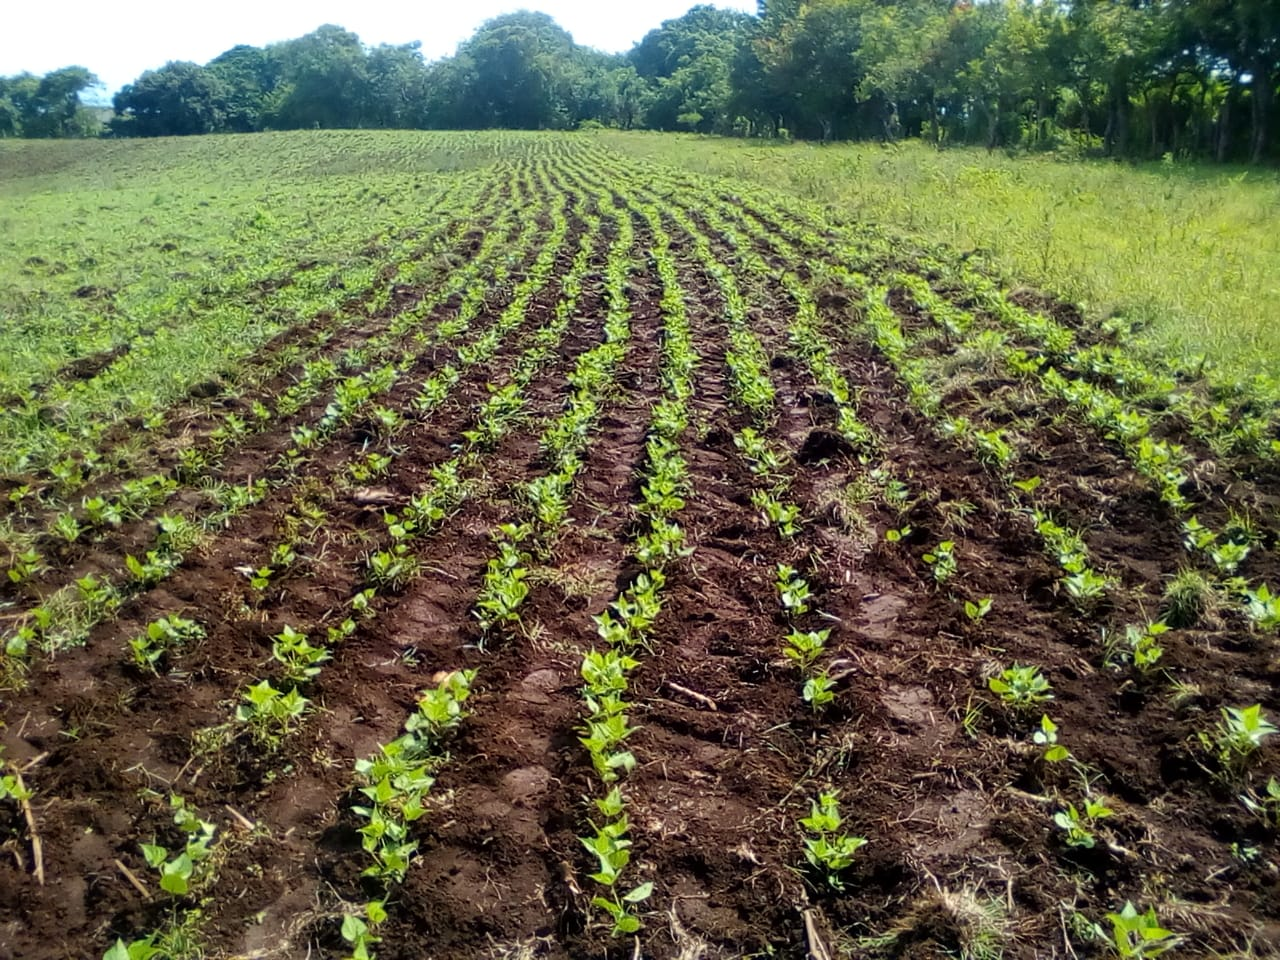 SOLD Land for agriculture or housing development